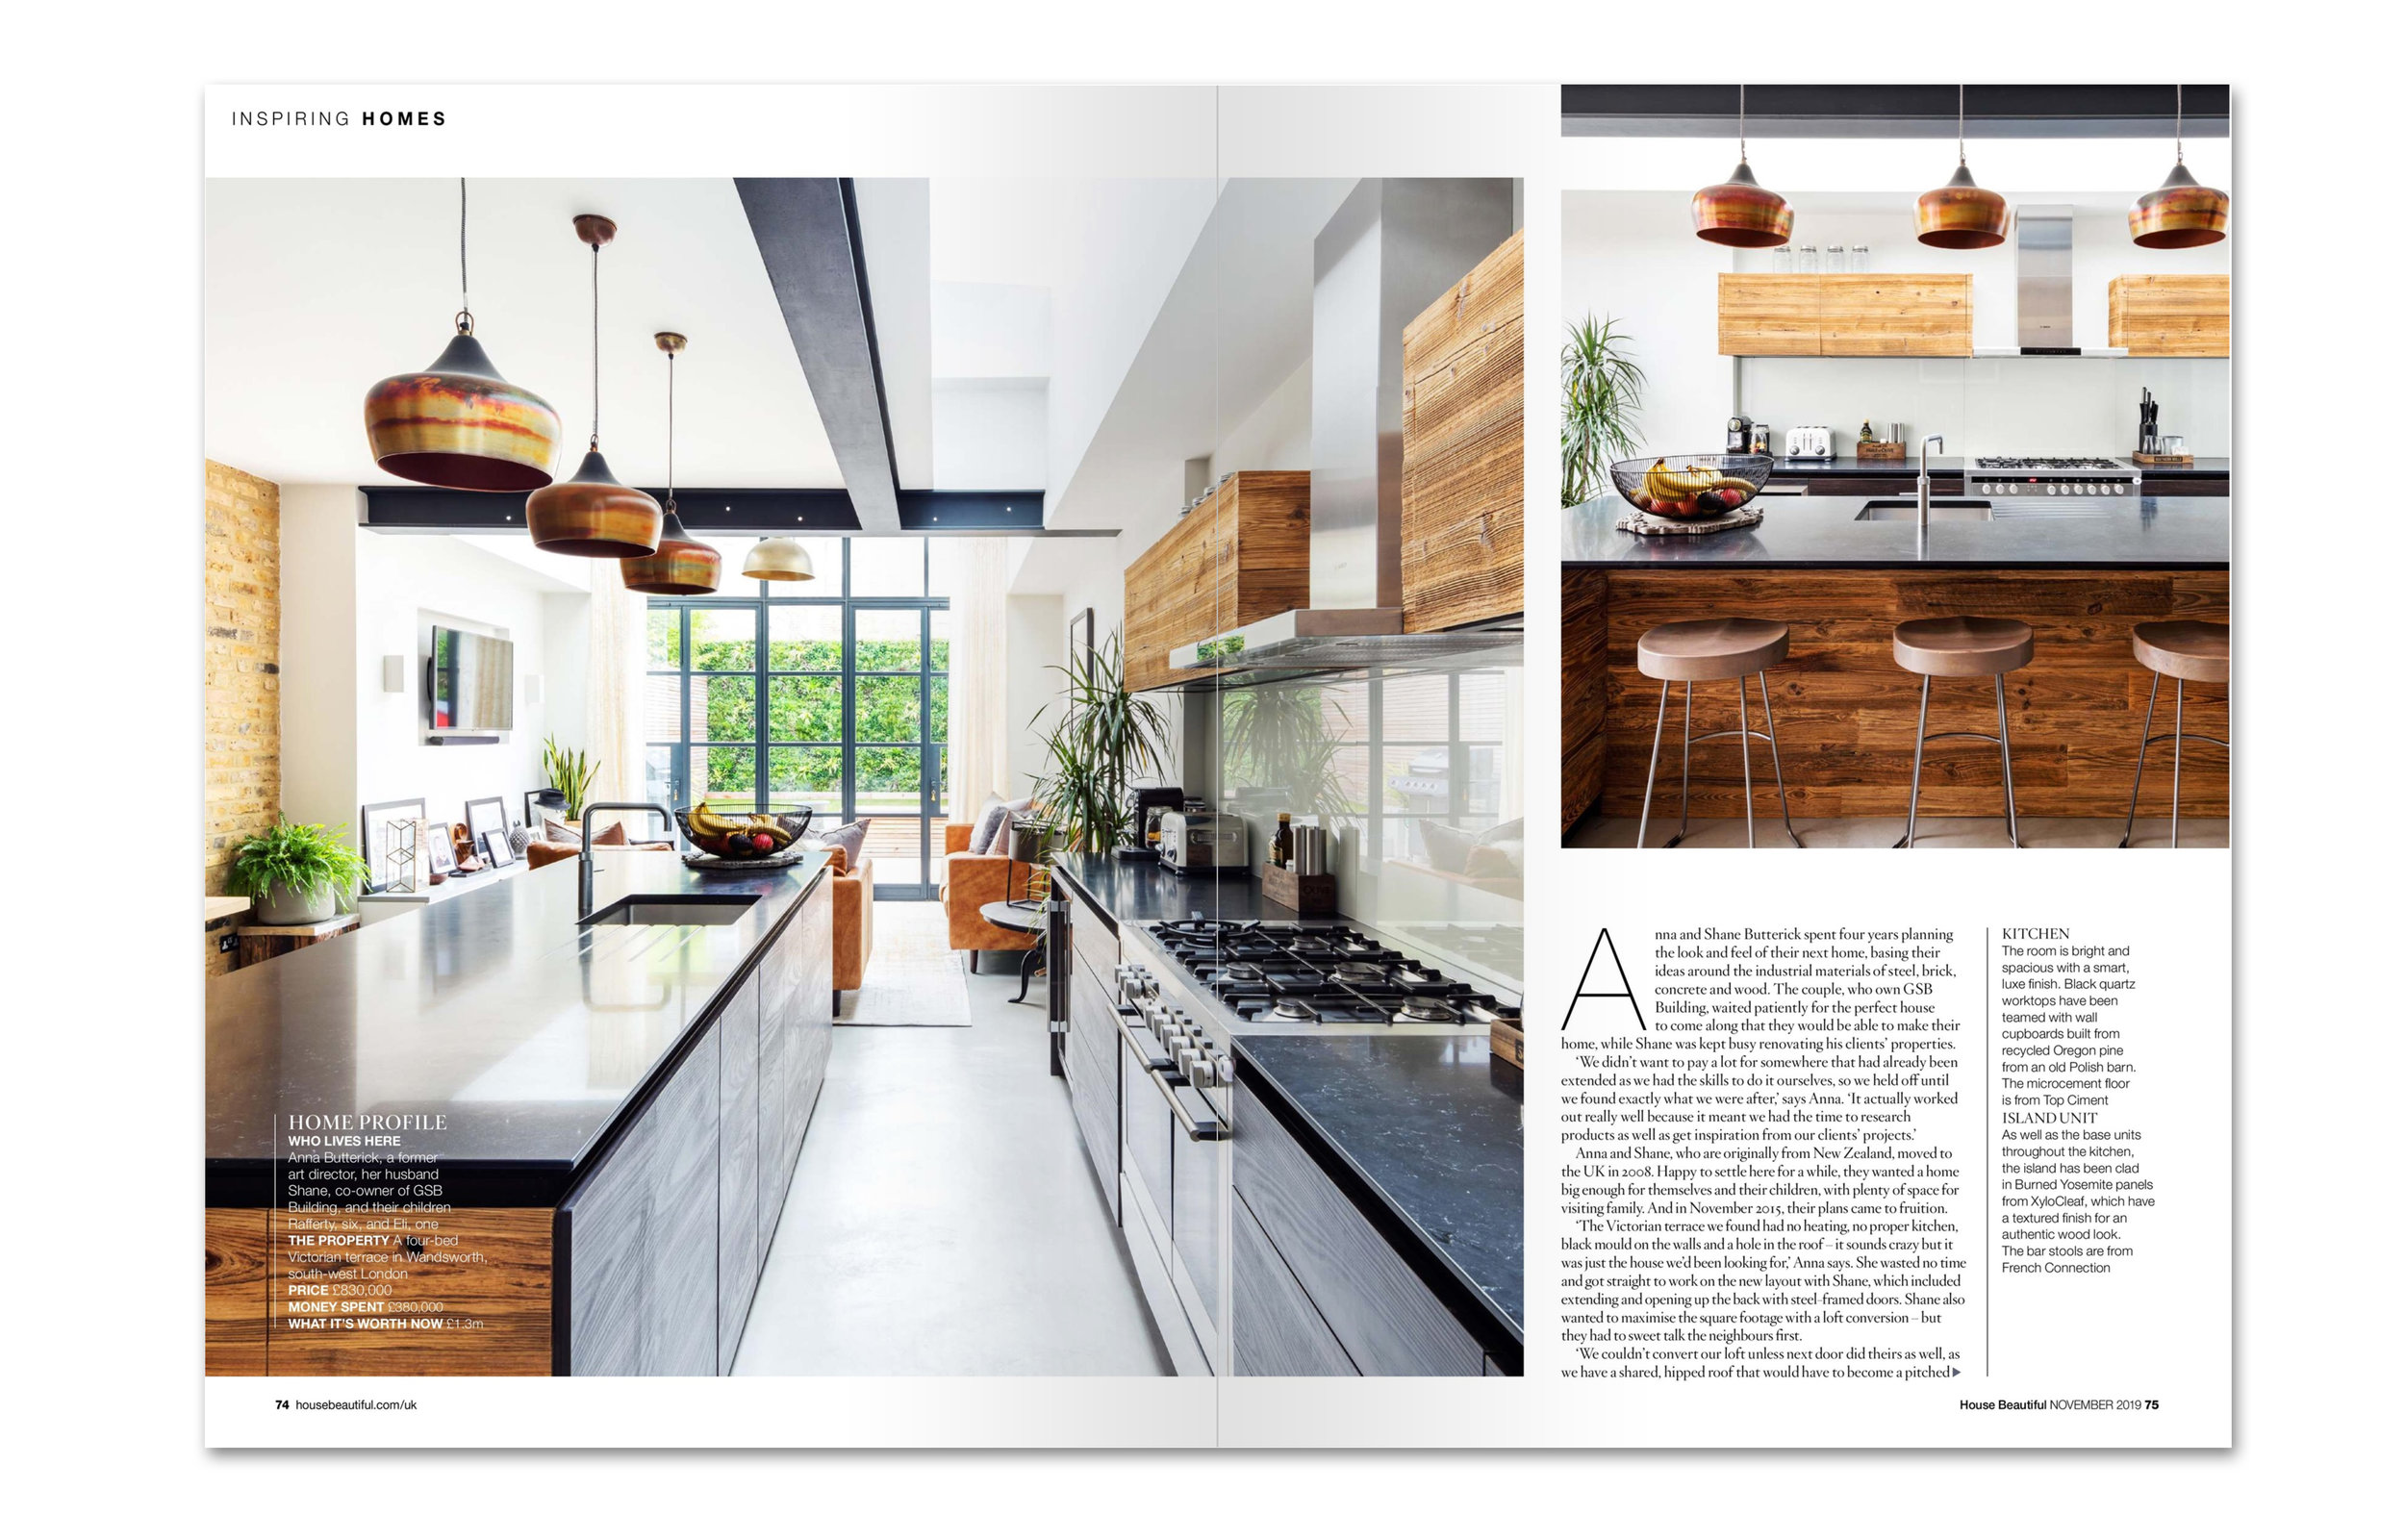 House Beautiful Nov 2019_02 Article Page 74-75.jpg